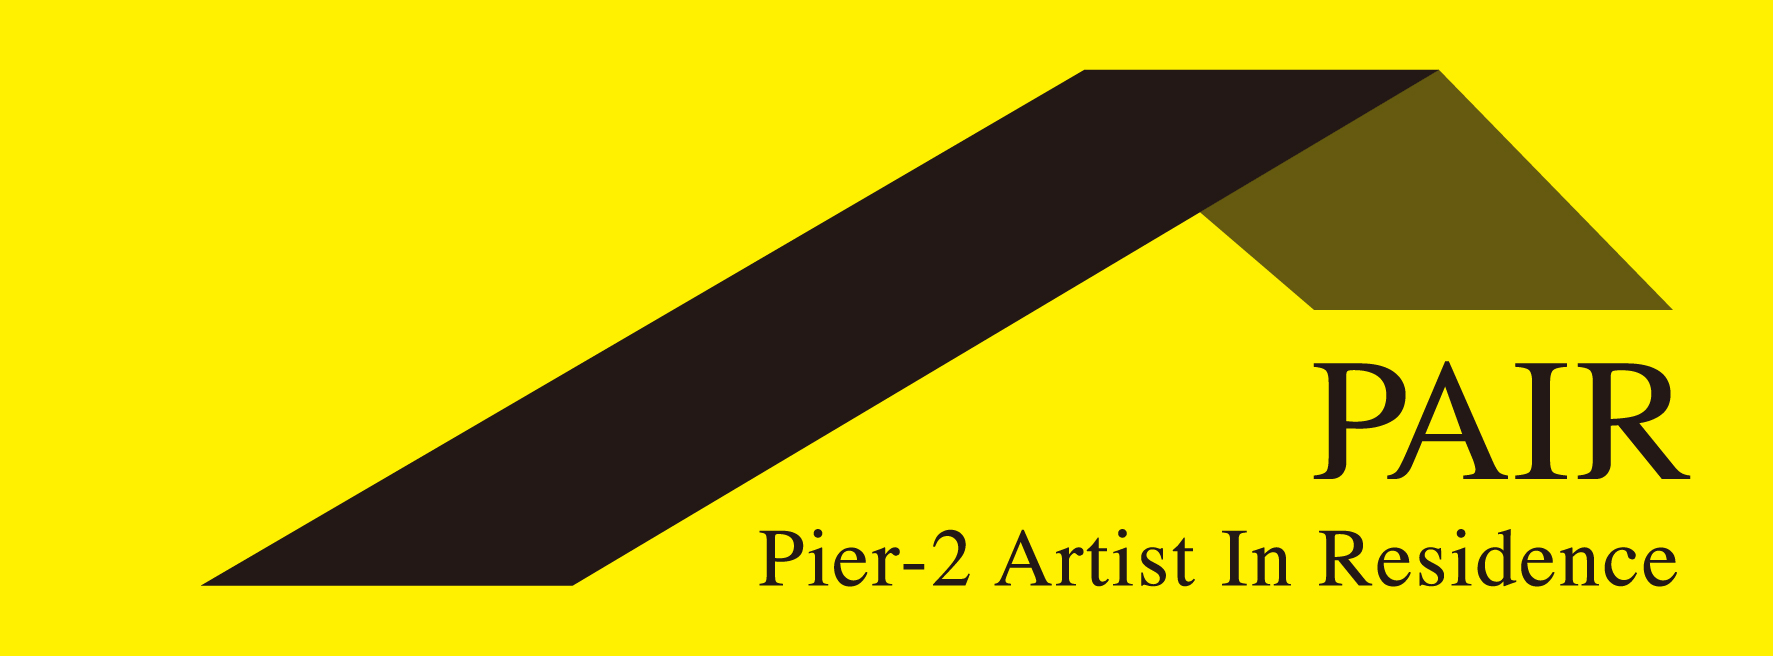 Pier-2 Art Center Artist-in-Residence Program 2016 Phase II OPEN CALL (Deadline: July 20)